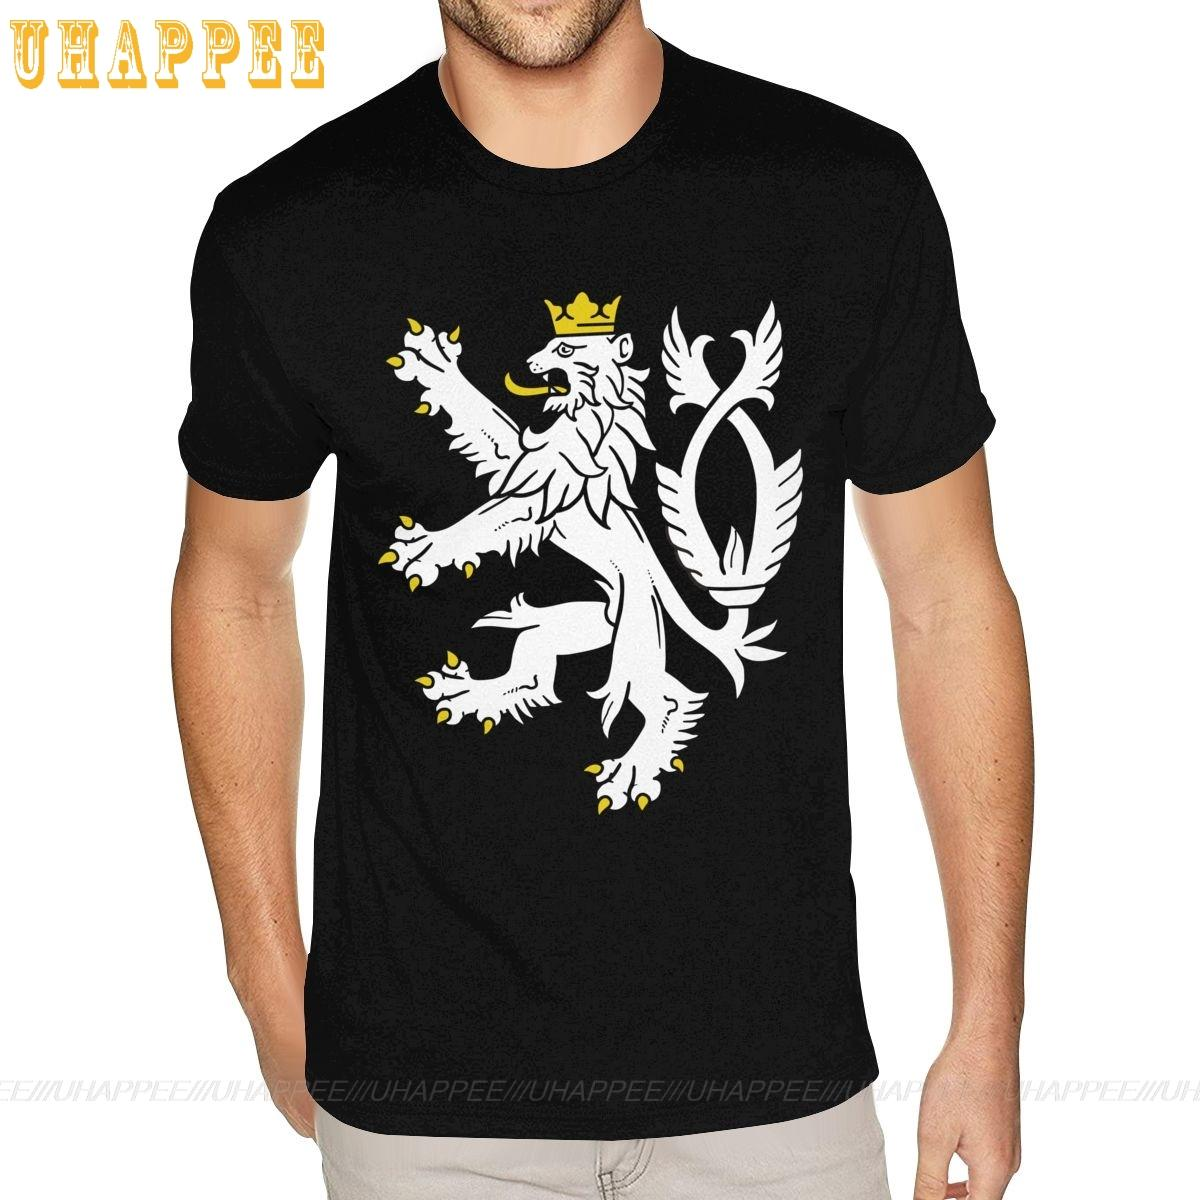 Shirts Man Coat Republic Short-Sleeves Fitness Branded-Top Boy Apparel Tees Arms-Of-The-Czech